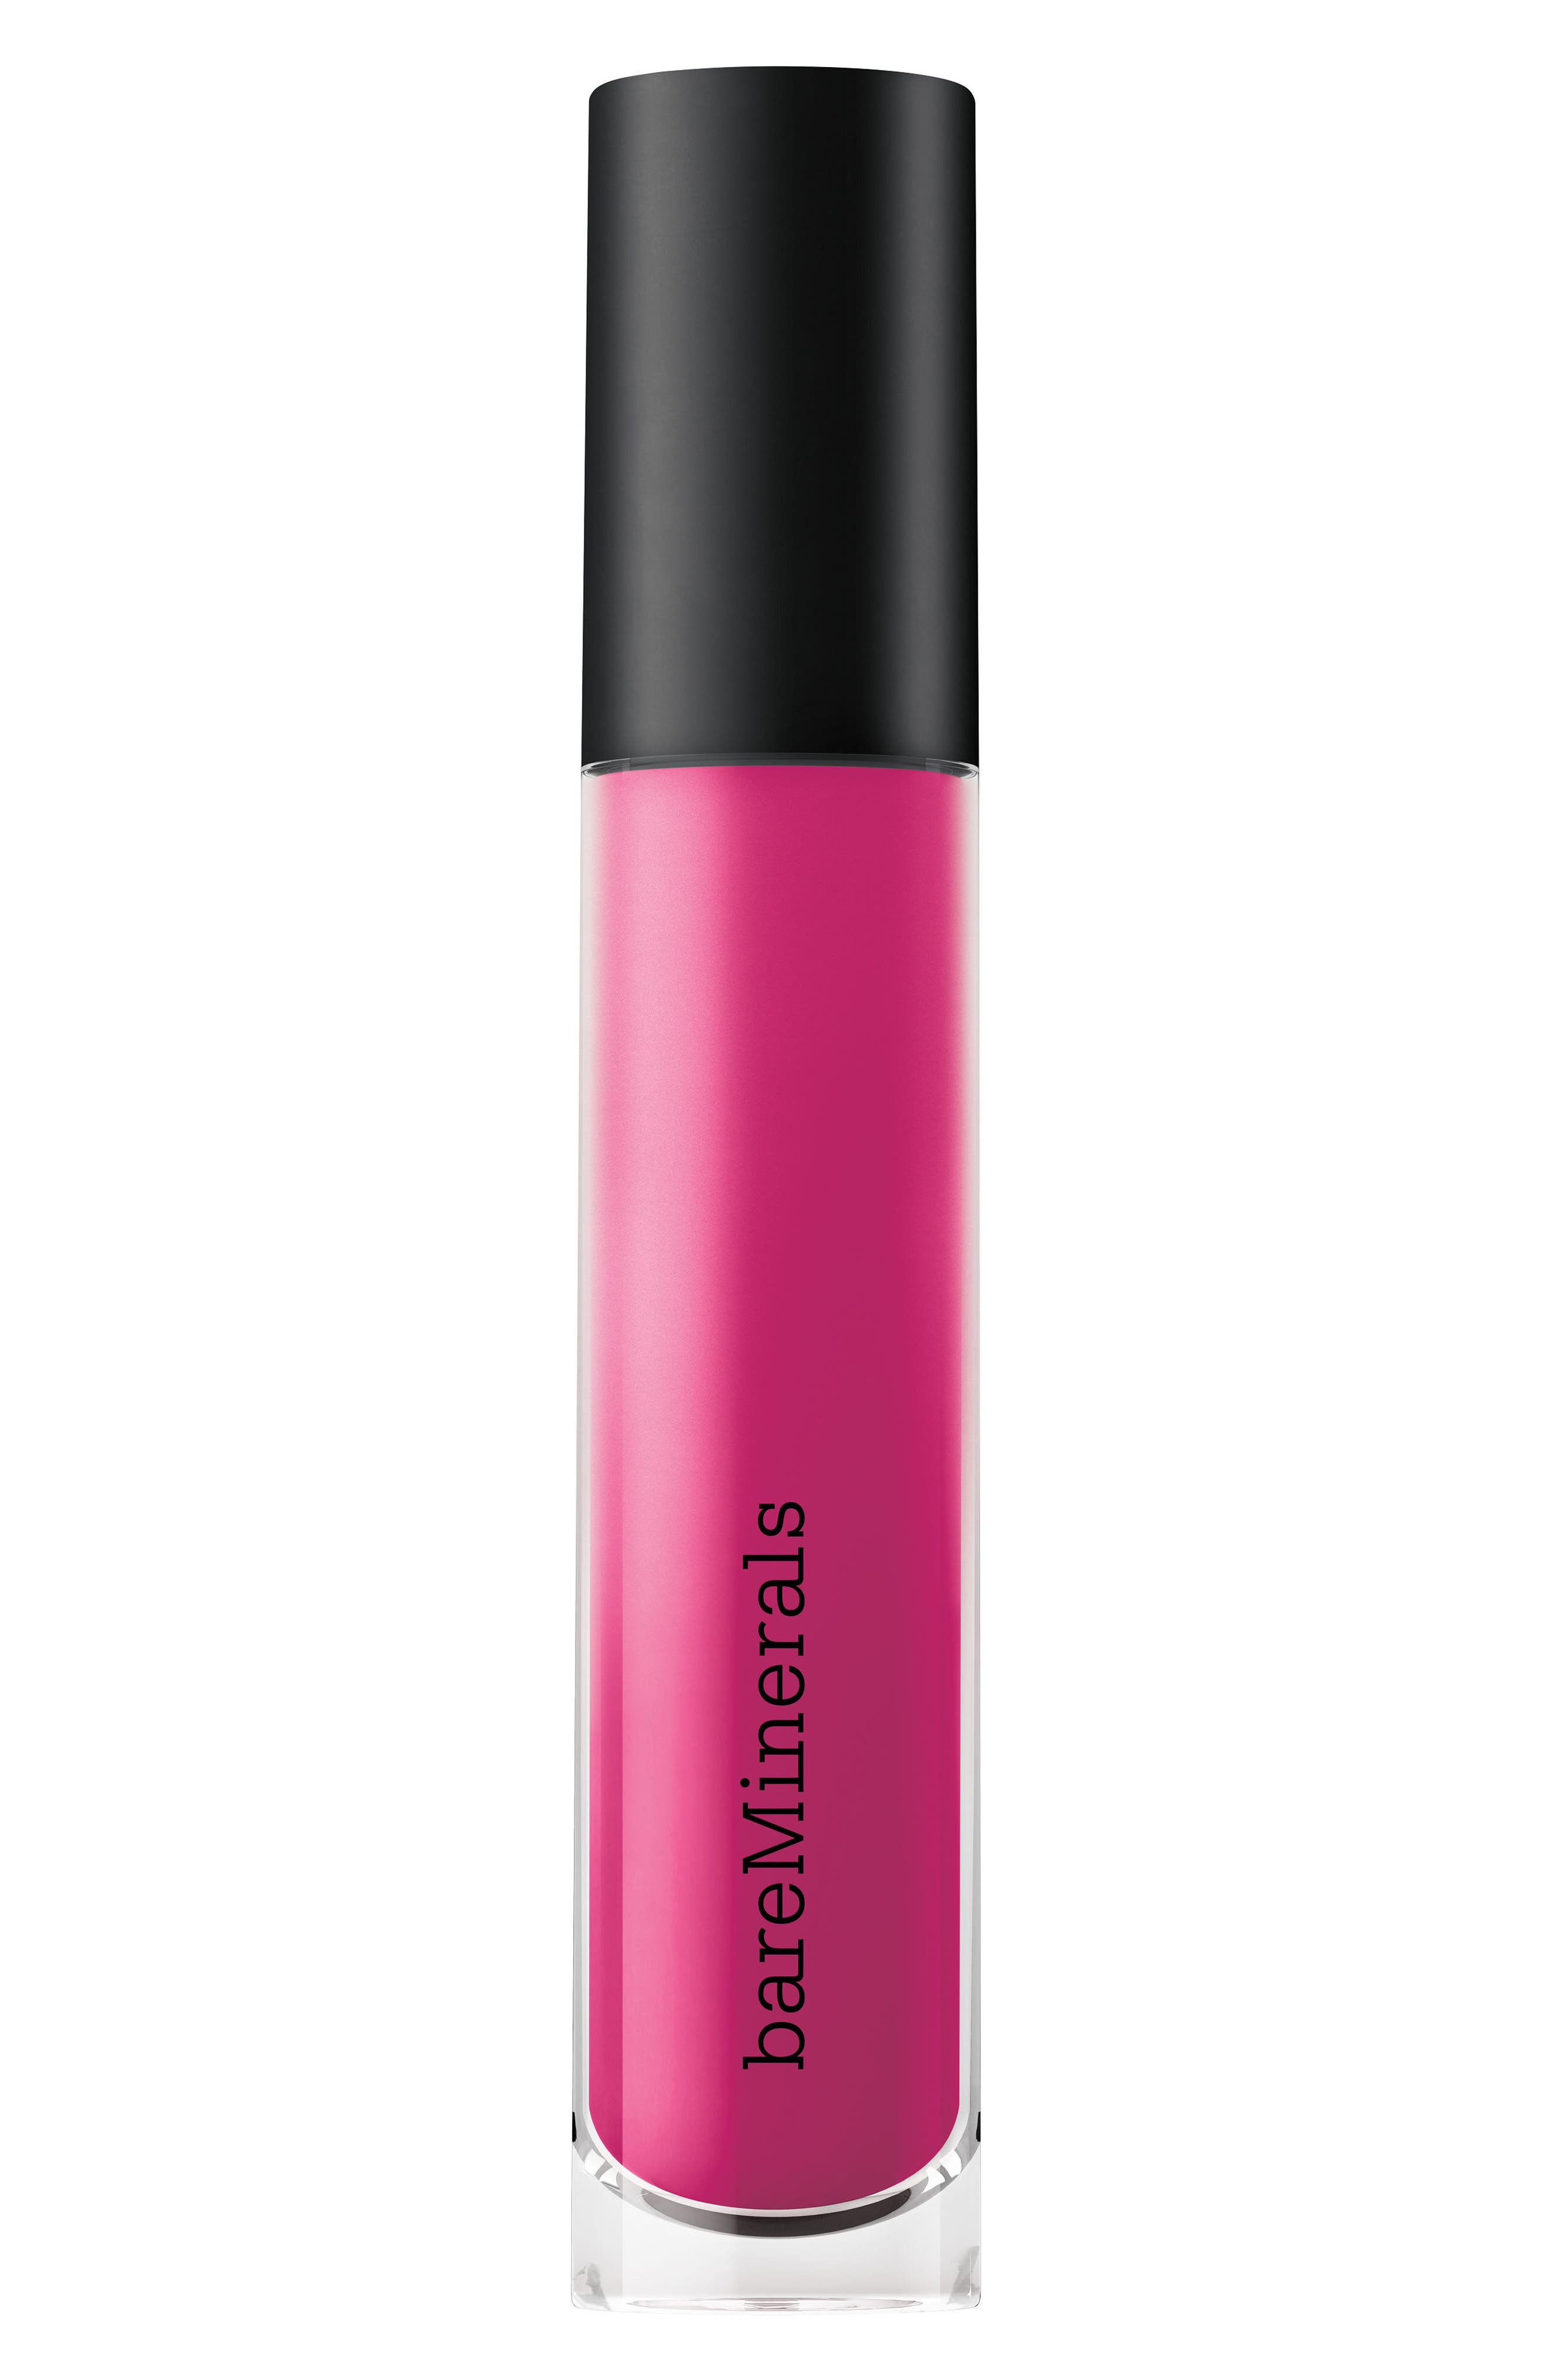 What it is: A creamy matte. lightweight liquid lipstick with bold, long-wearing color formulated to be resistant to transferring. What it does: Its no-tack texture is extremely comfortable to wear. To give your lips a little extra love, the formula includes moisturizing ingredients that help combat dryness. Its range of shades work on any skin tone. How to use: Apply with the paddle applicator for full-coverage color in one sweep, or use a slim